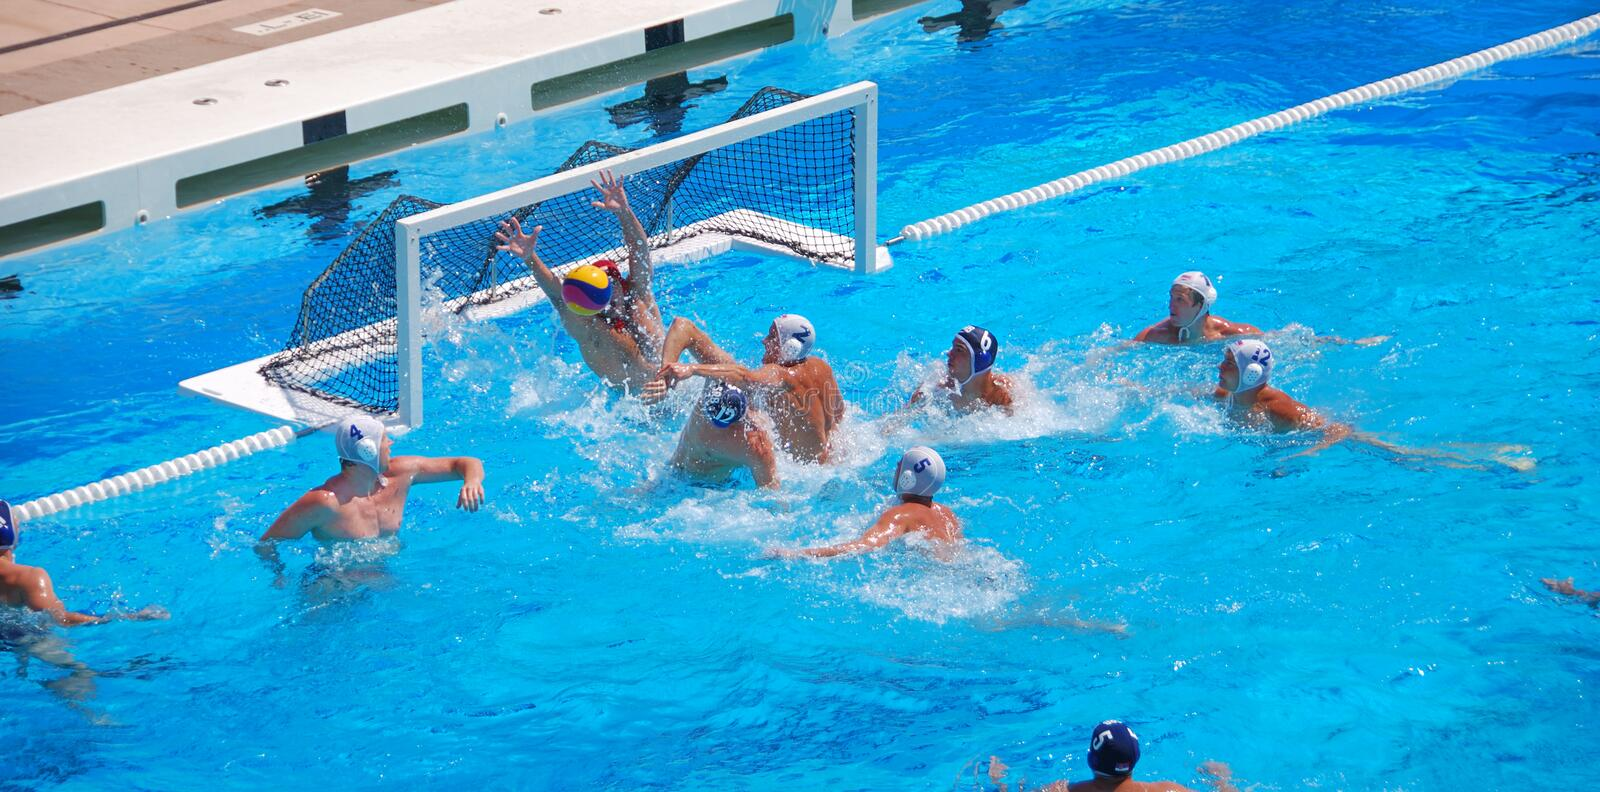 USA - Serbia Friendly Water Polo Game royalty free stock photography